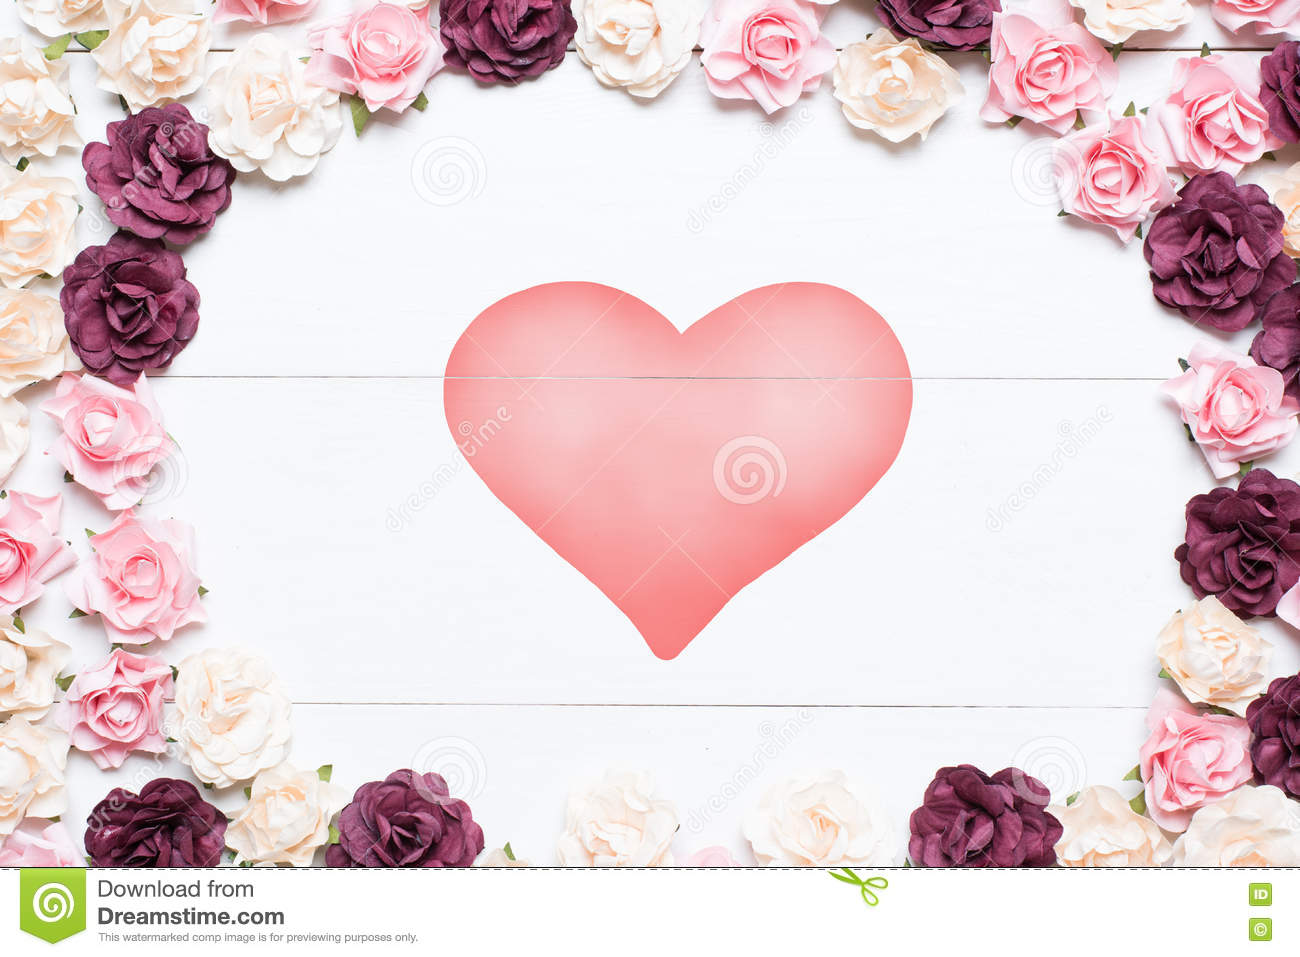 Heart symbol on white wooden table with pink red and white roses heart symbol on white wooden table with pink red and white roses buycottarizona Choice Image